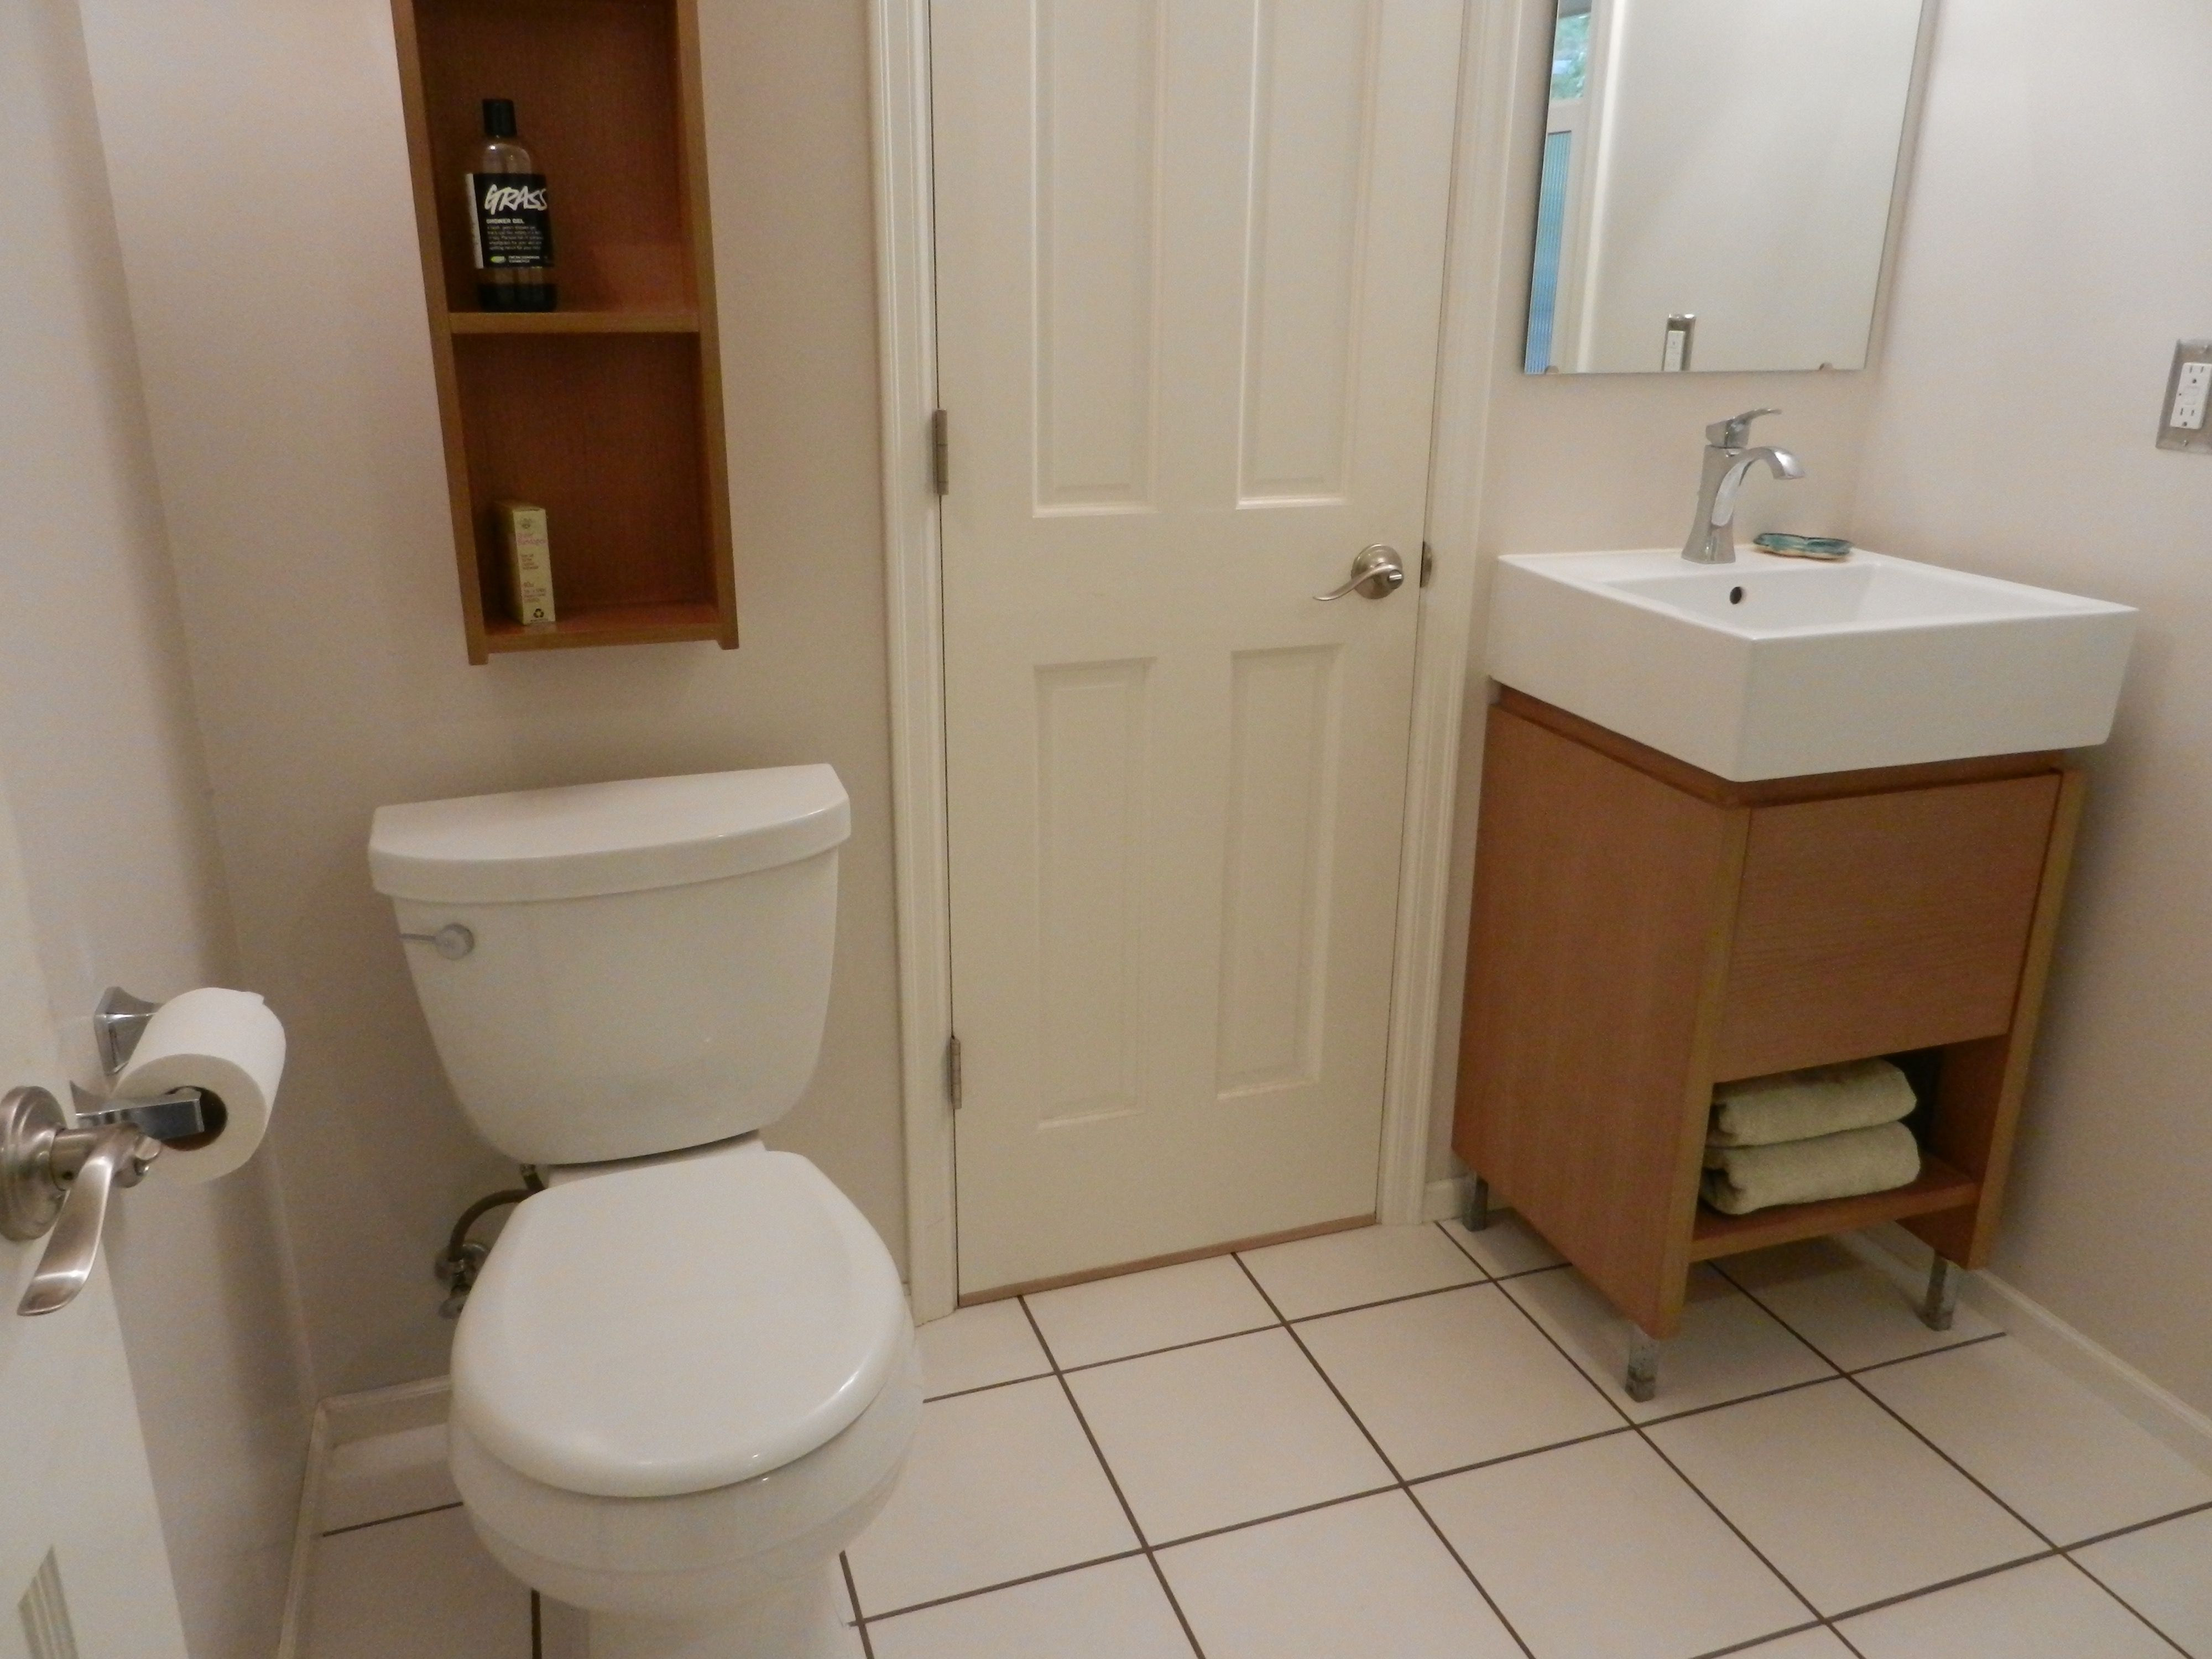 Bathroom Remodeling Eugene Oregon bathroom remodel with an amazing two person shower. castile